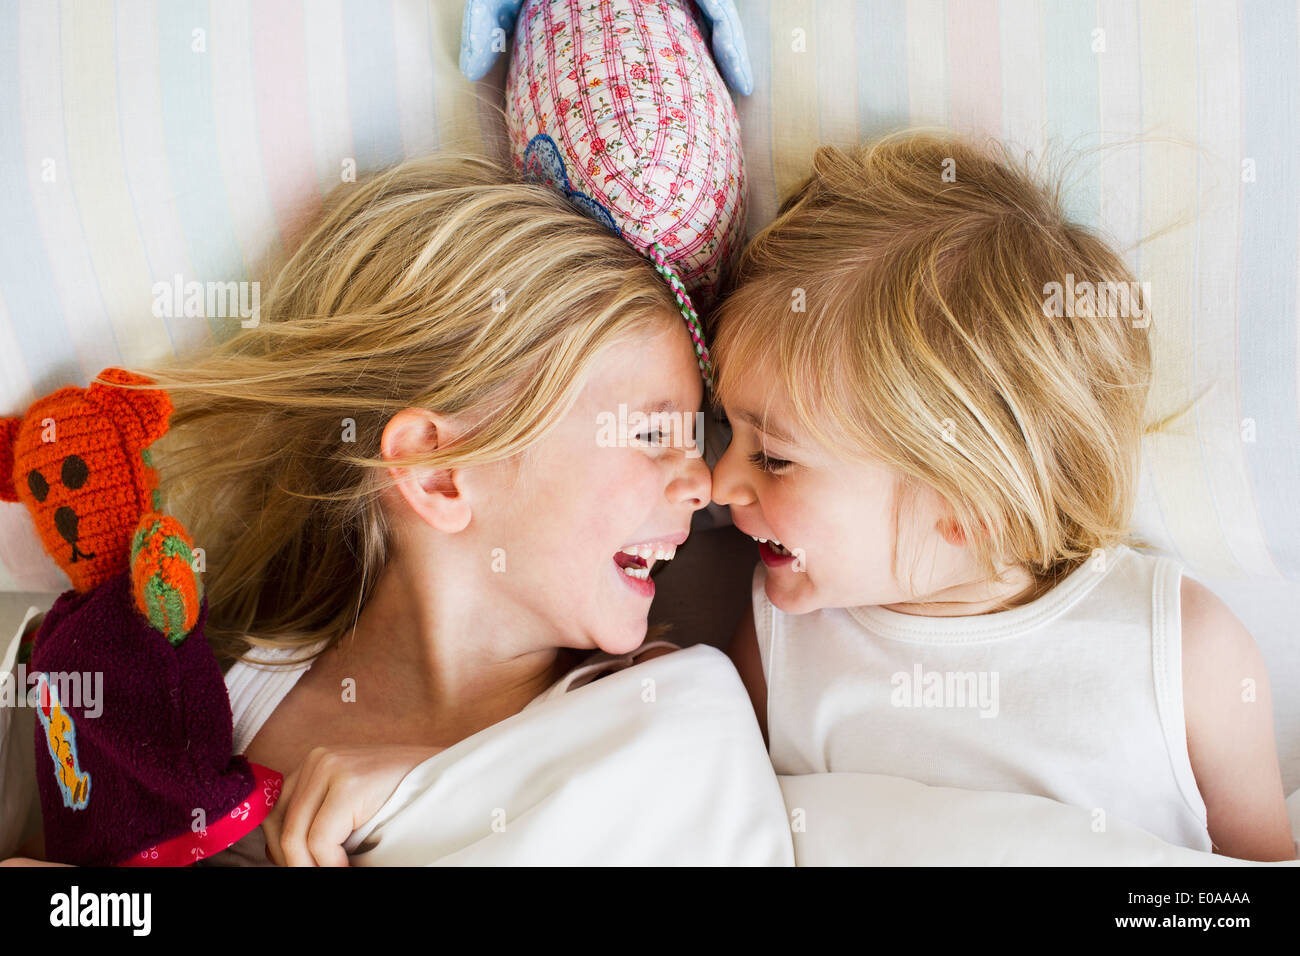 Portrait of two young sisters lying face to face in bed - Stock Image